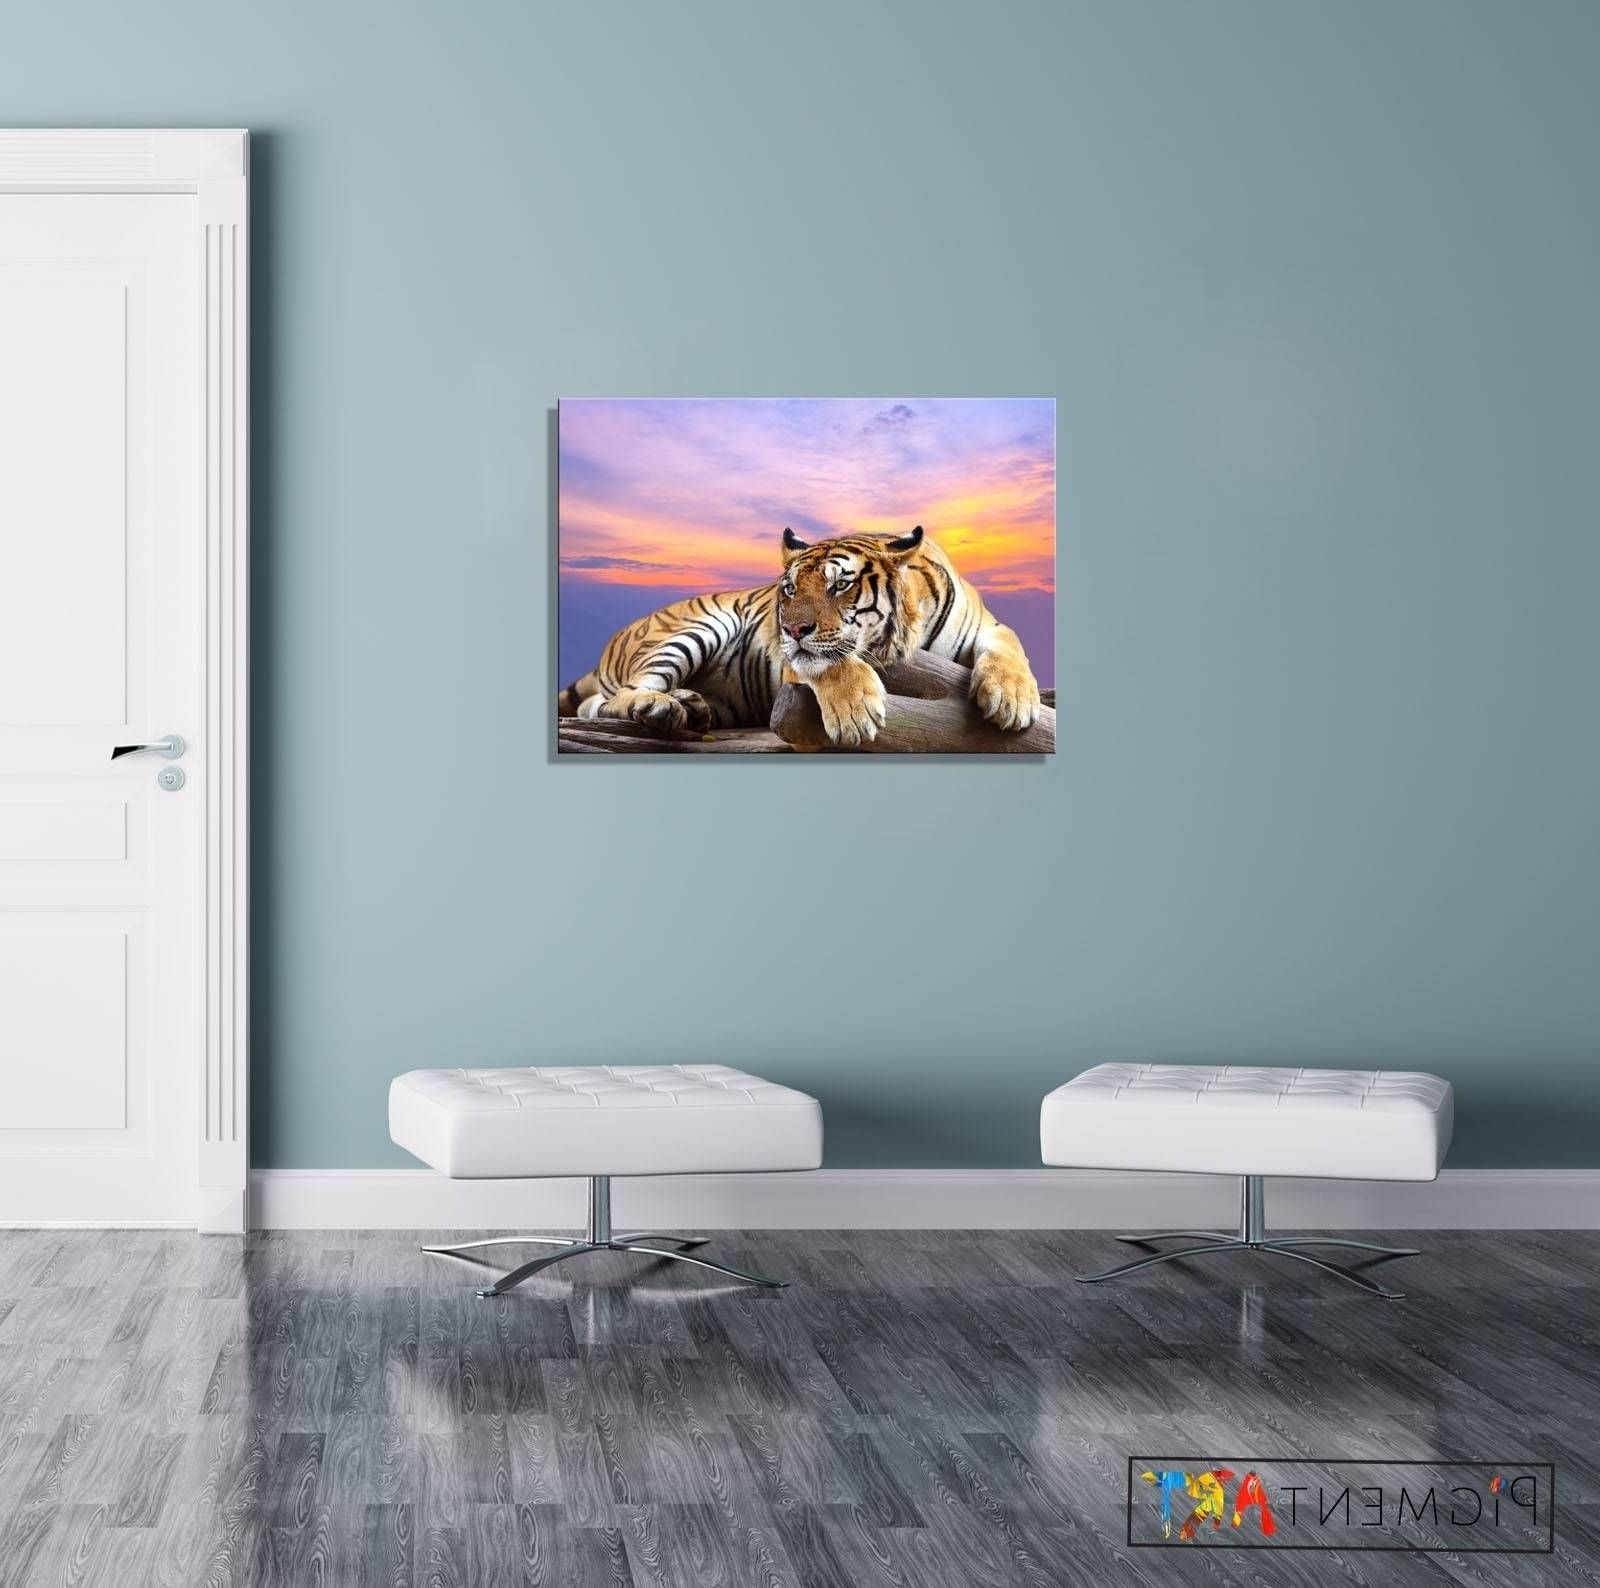 Popular Animal Canvas Wall Art In Best Photos Of Animal Canvas Wall Art Showing Trends And Styles (View 4 of 15)